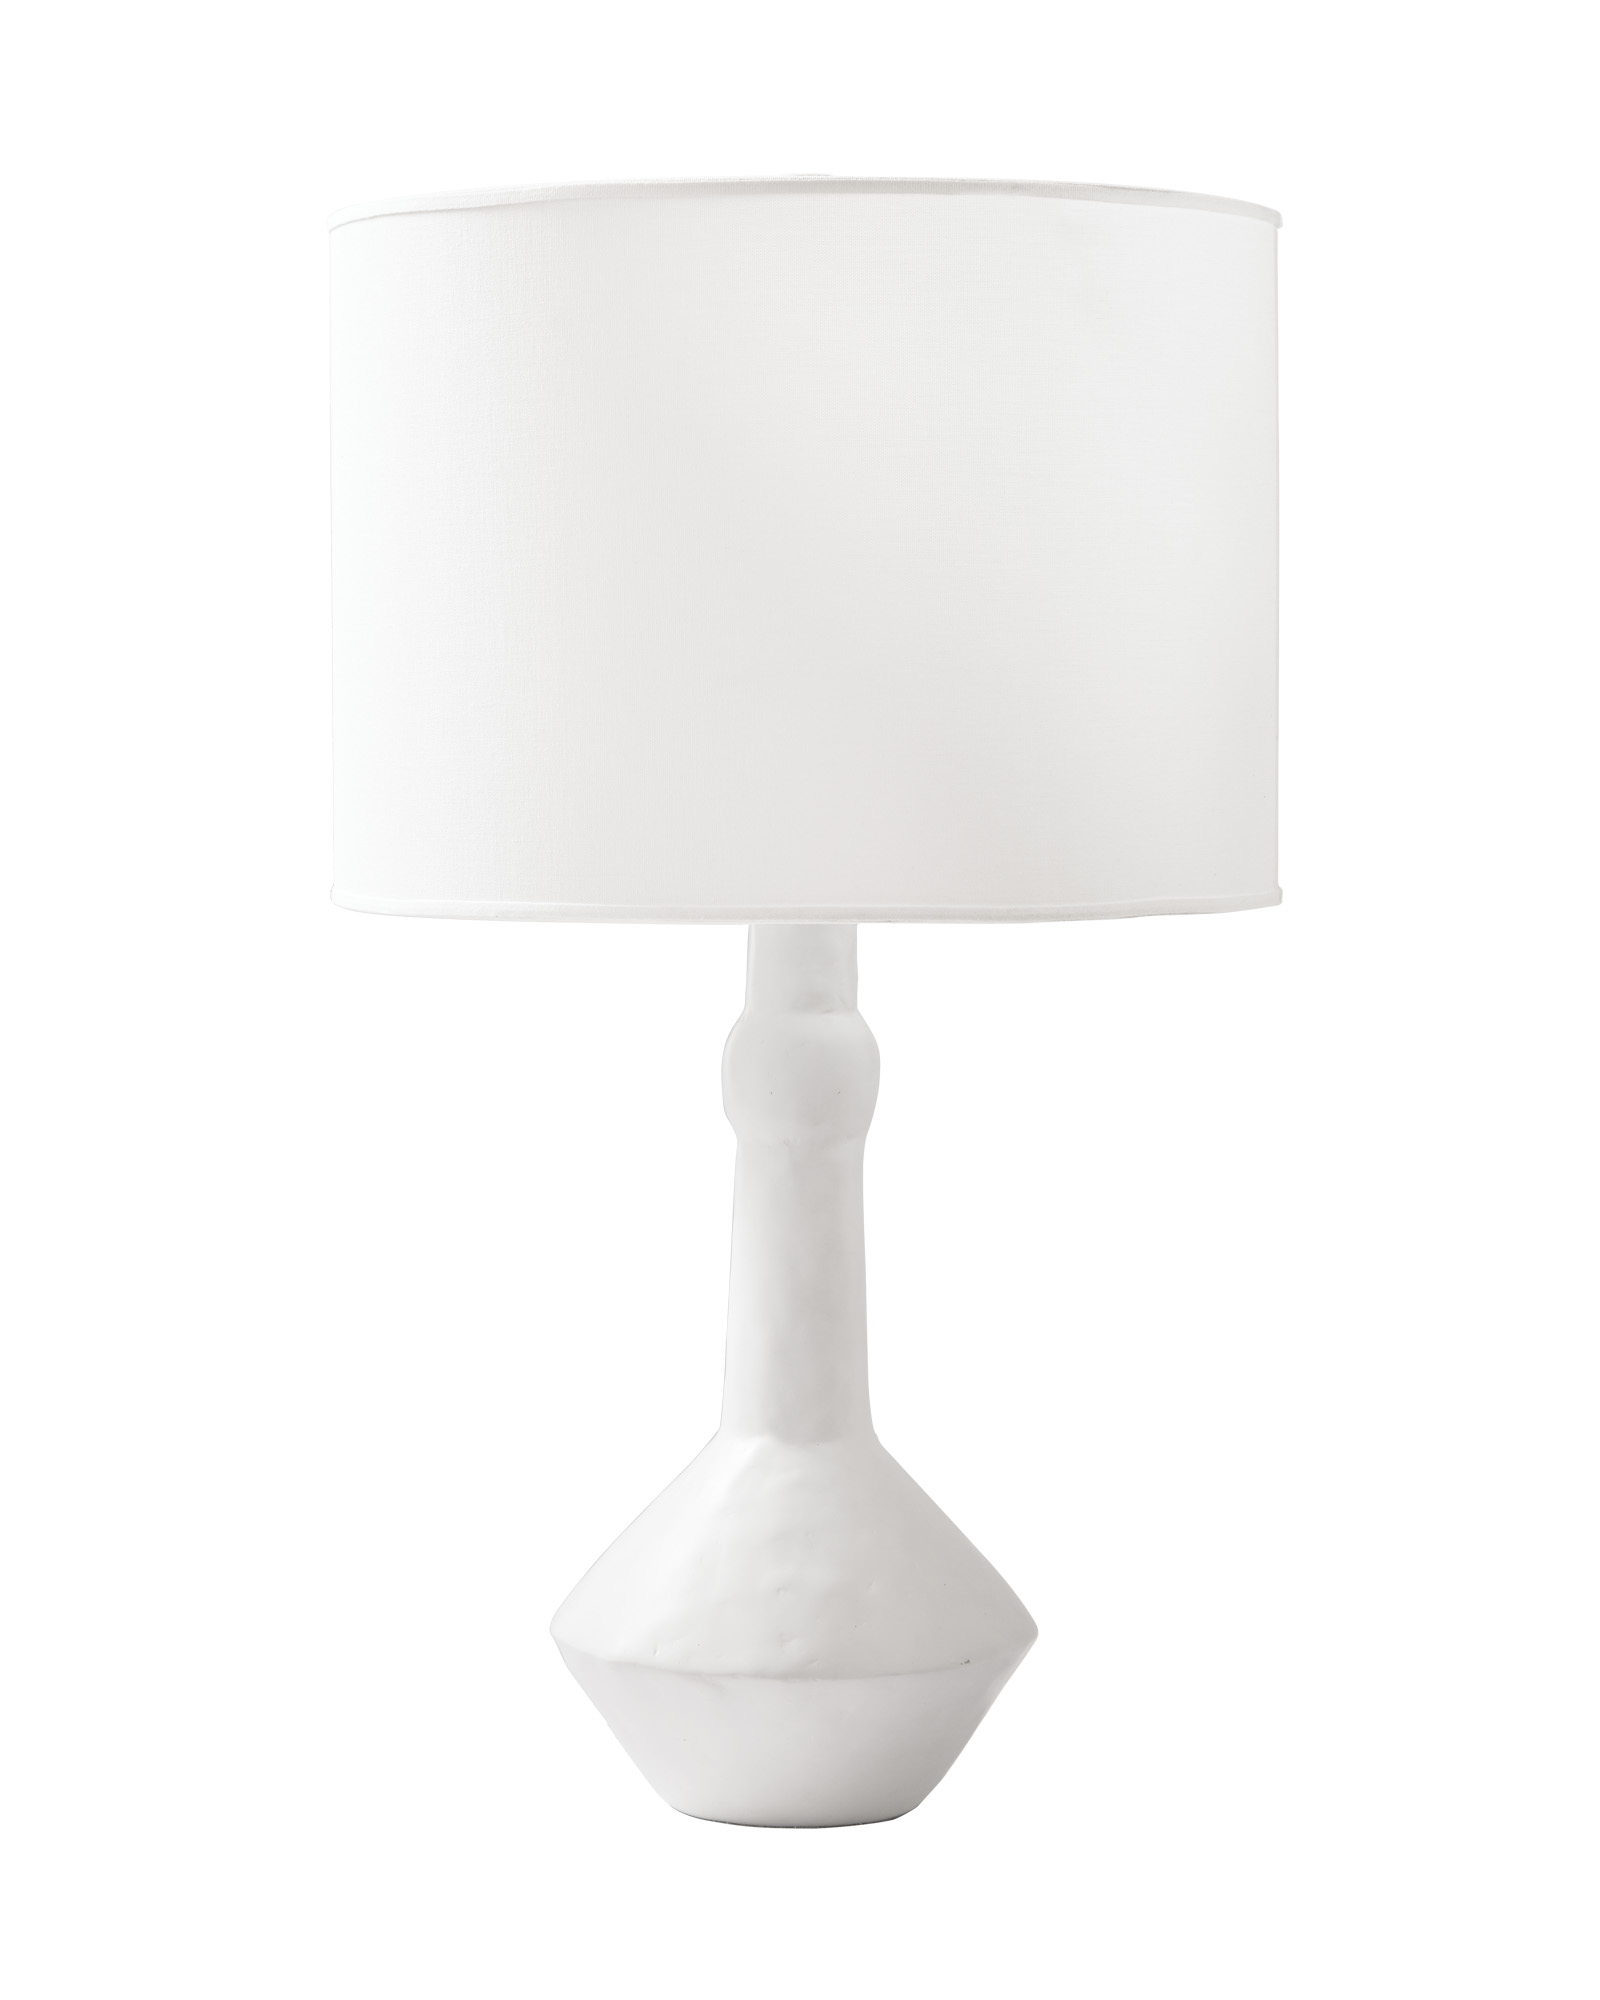 Lighting_Brighton_Table_Lamp_Large_MV_Crop_BASE.jpg